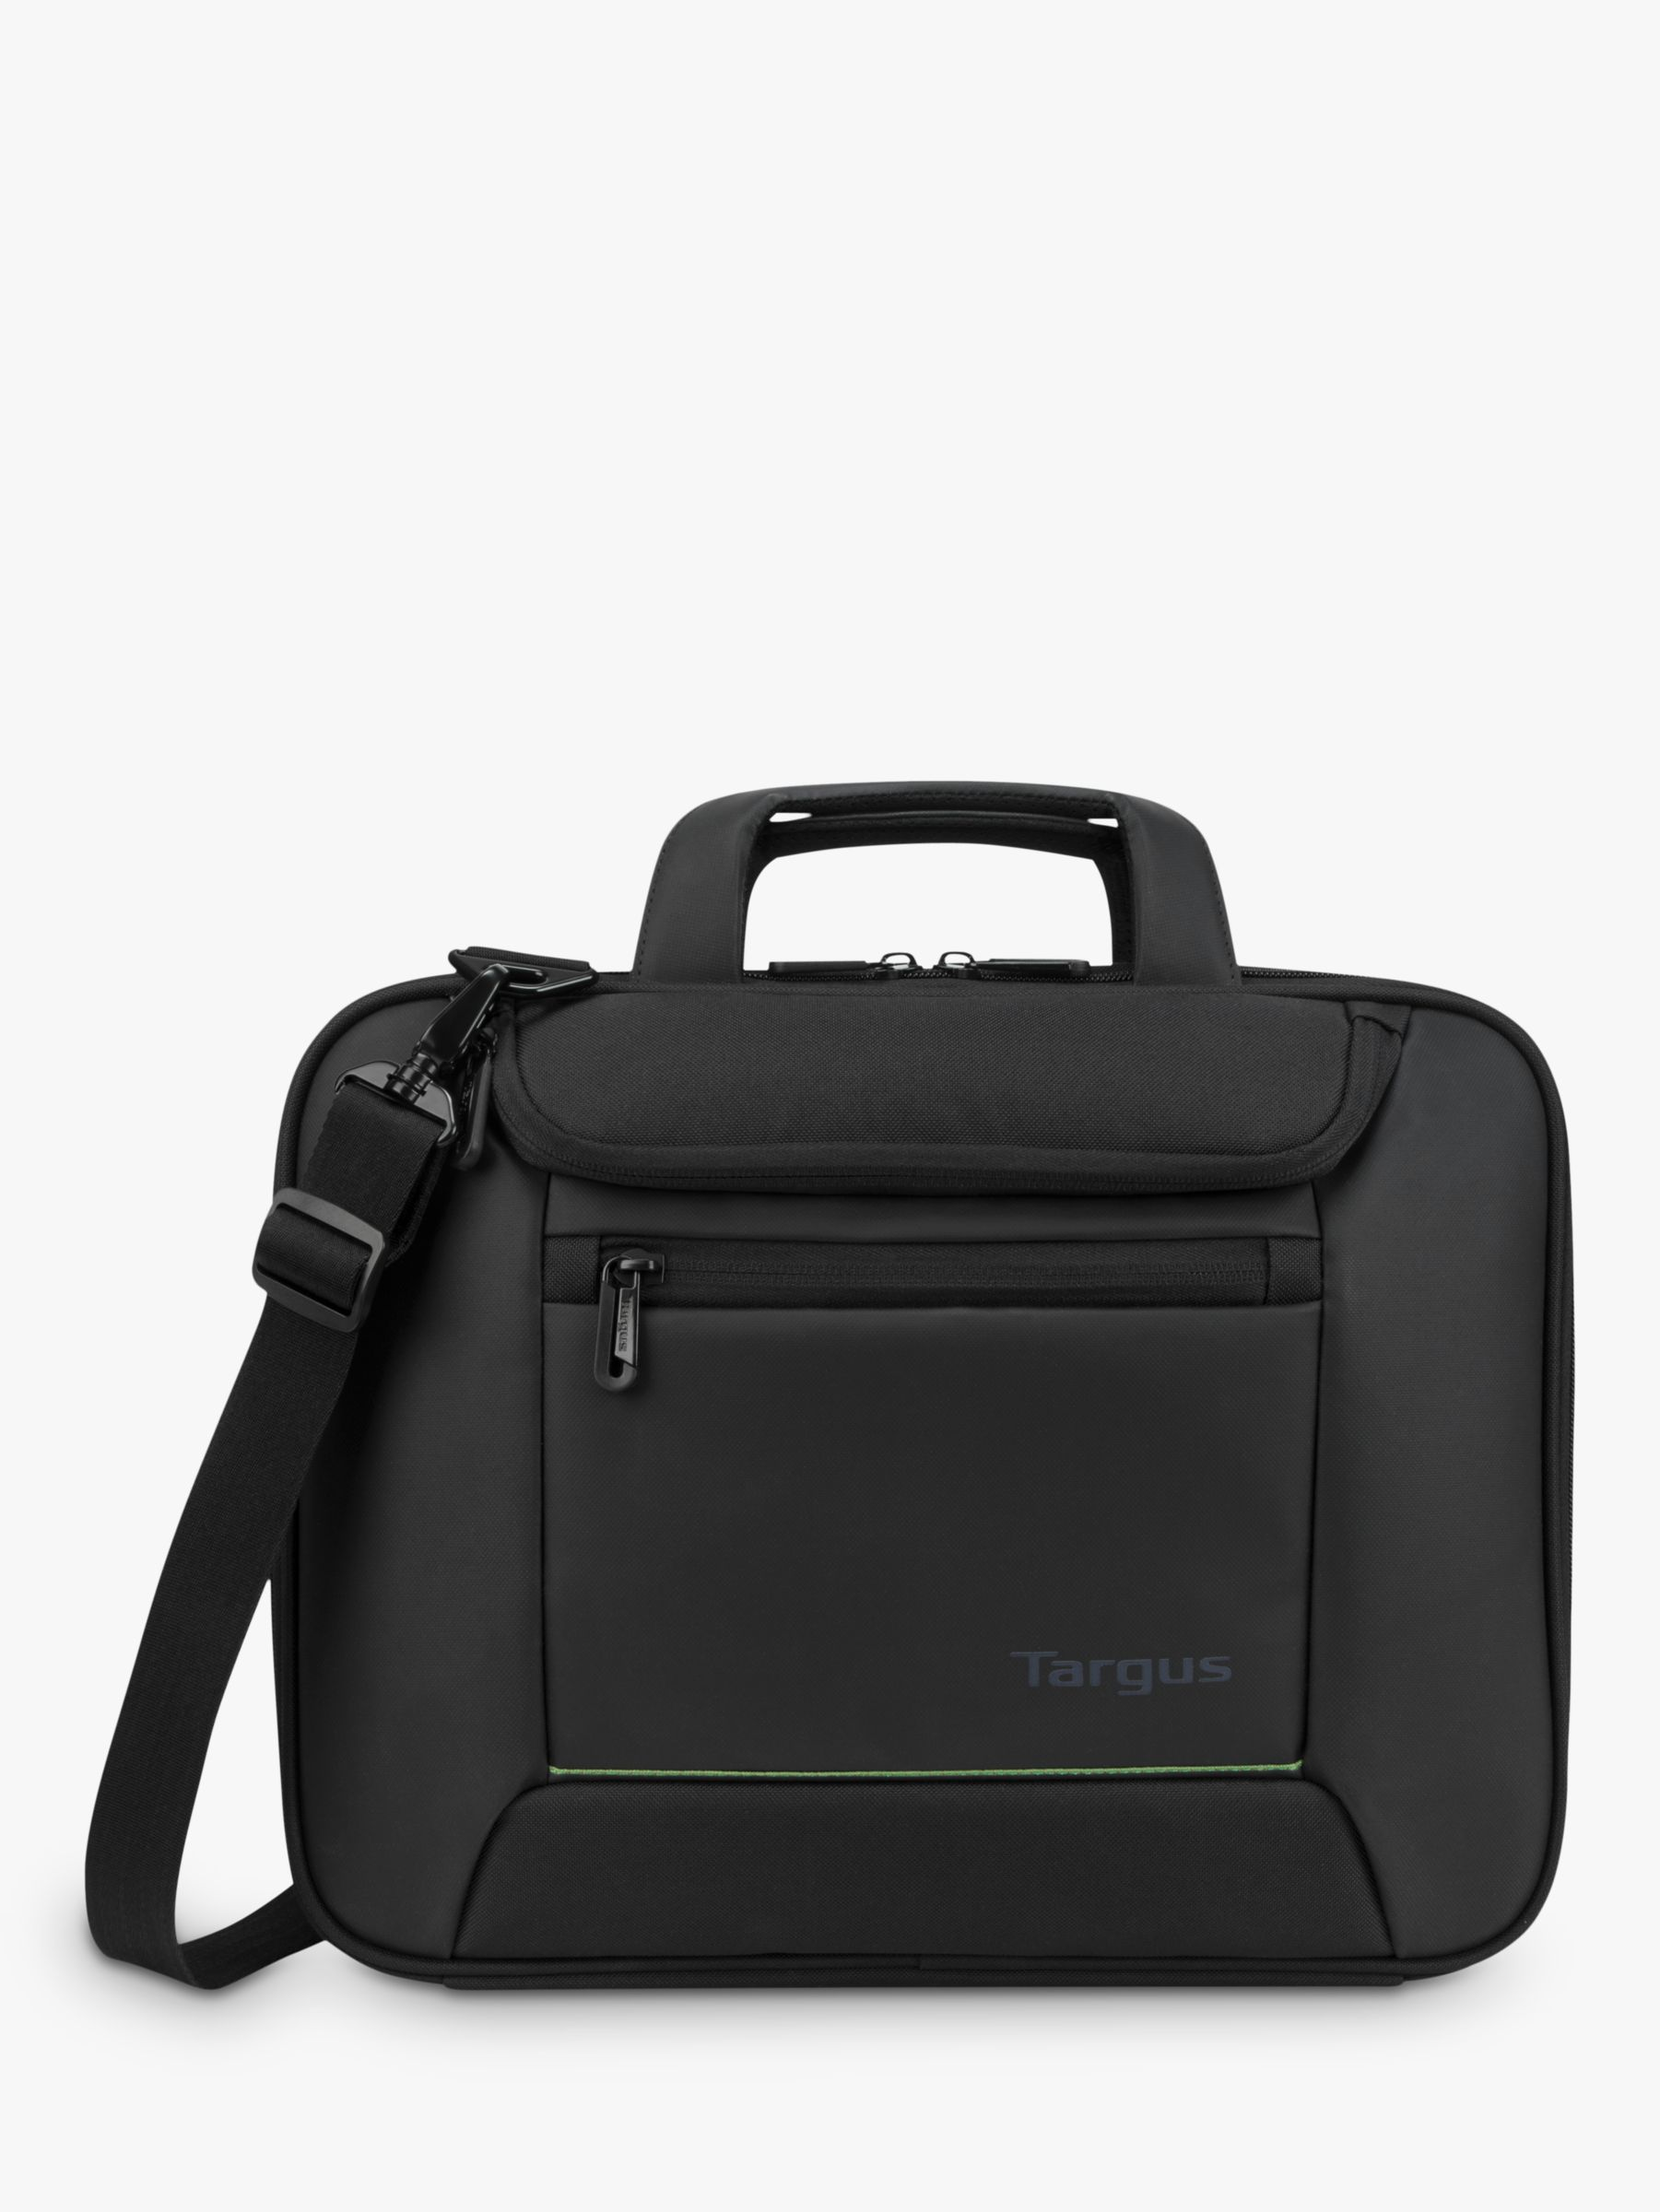 Targus Targus Balance EcoSmart Briefcase for Laptops up to 14, Black